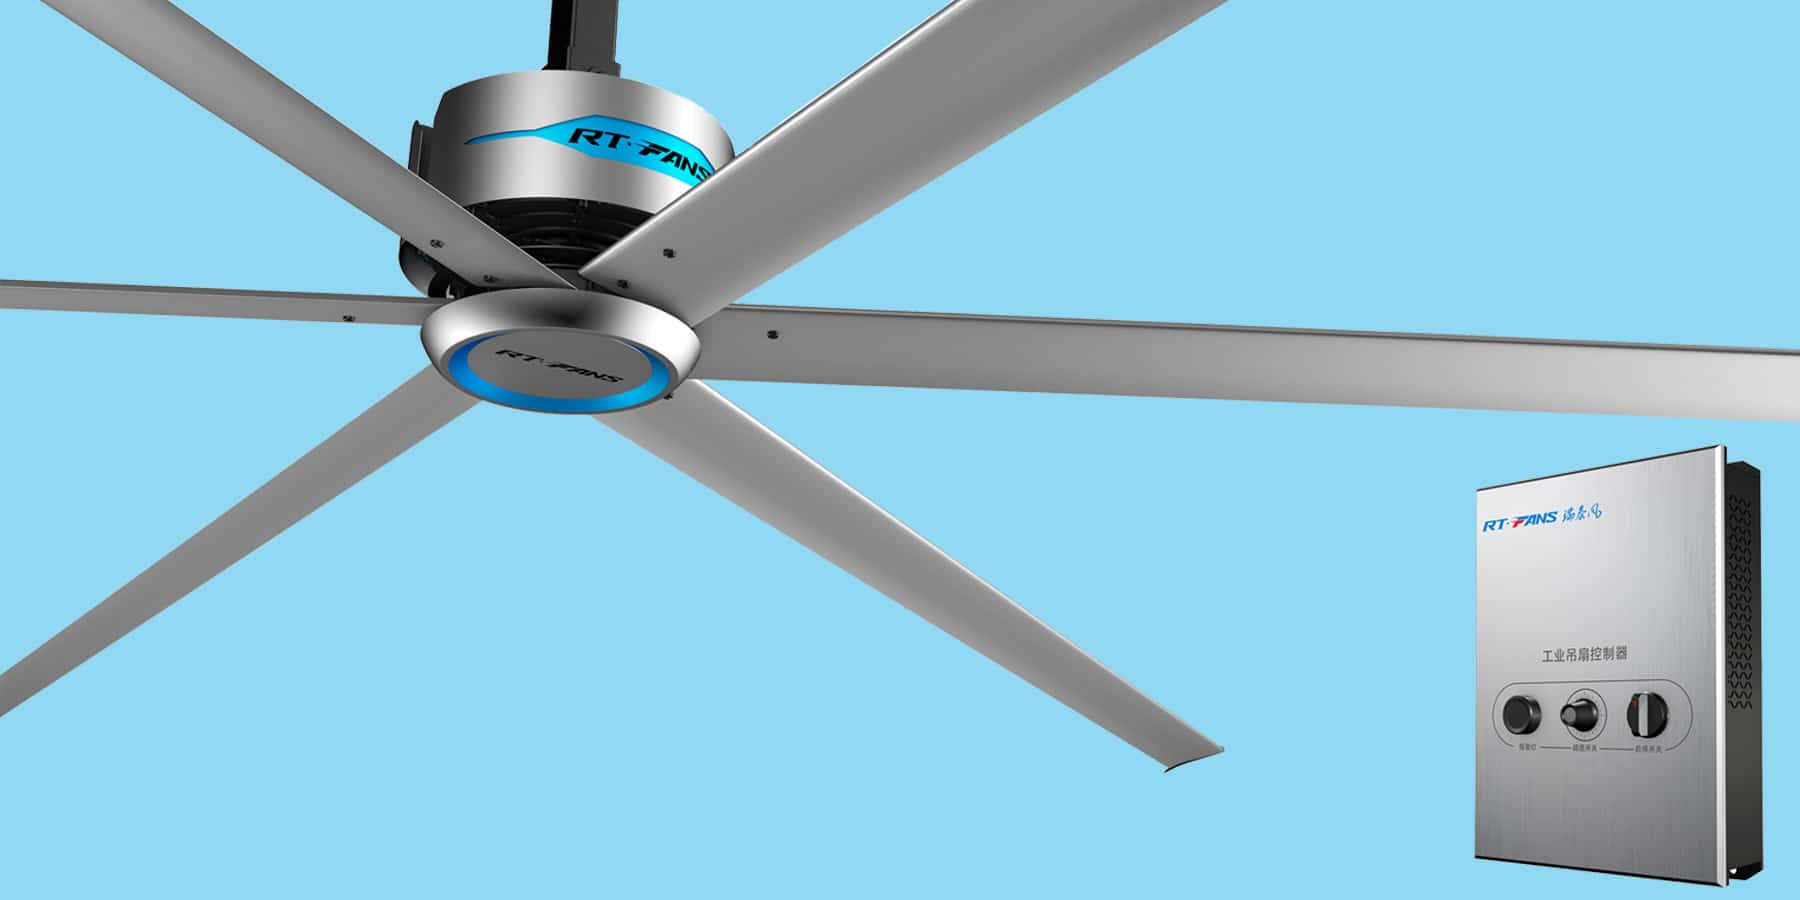 pmsm fan used for large spaces 04 min